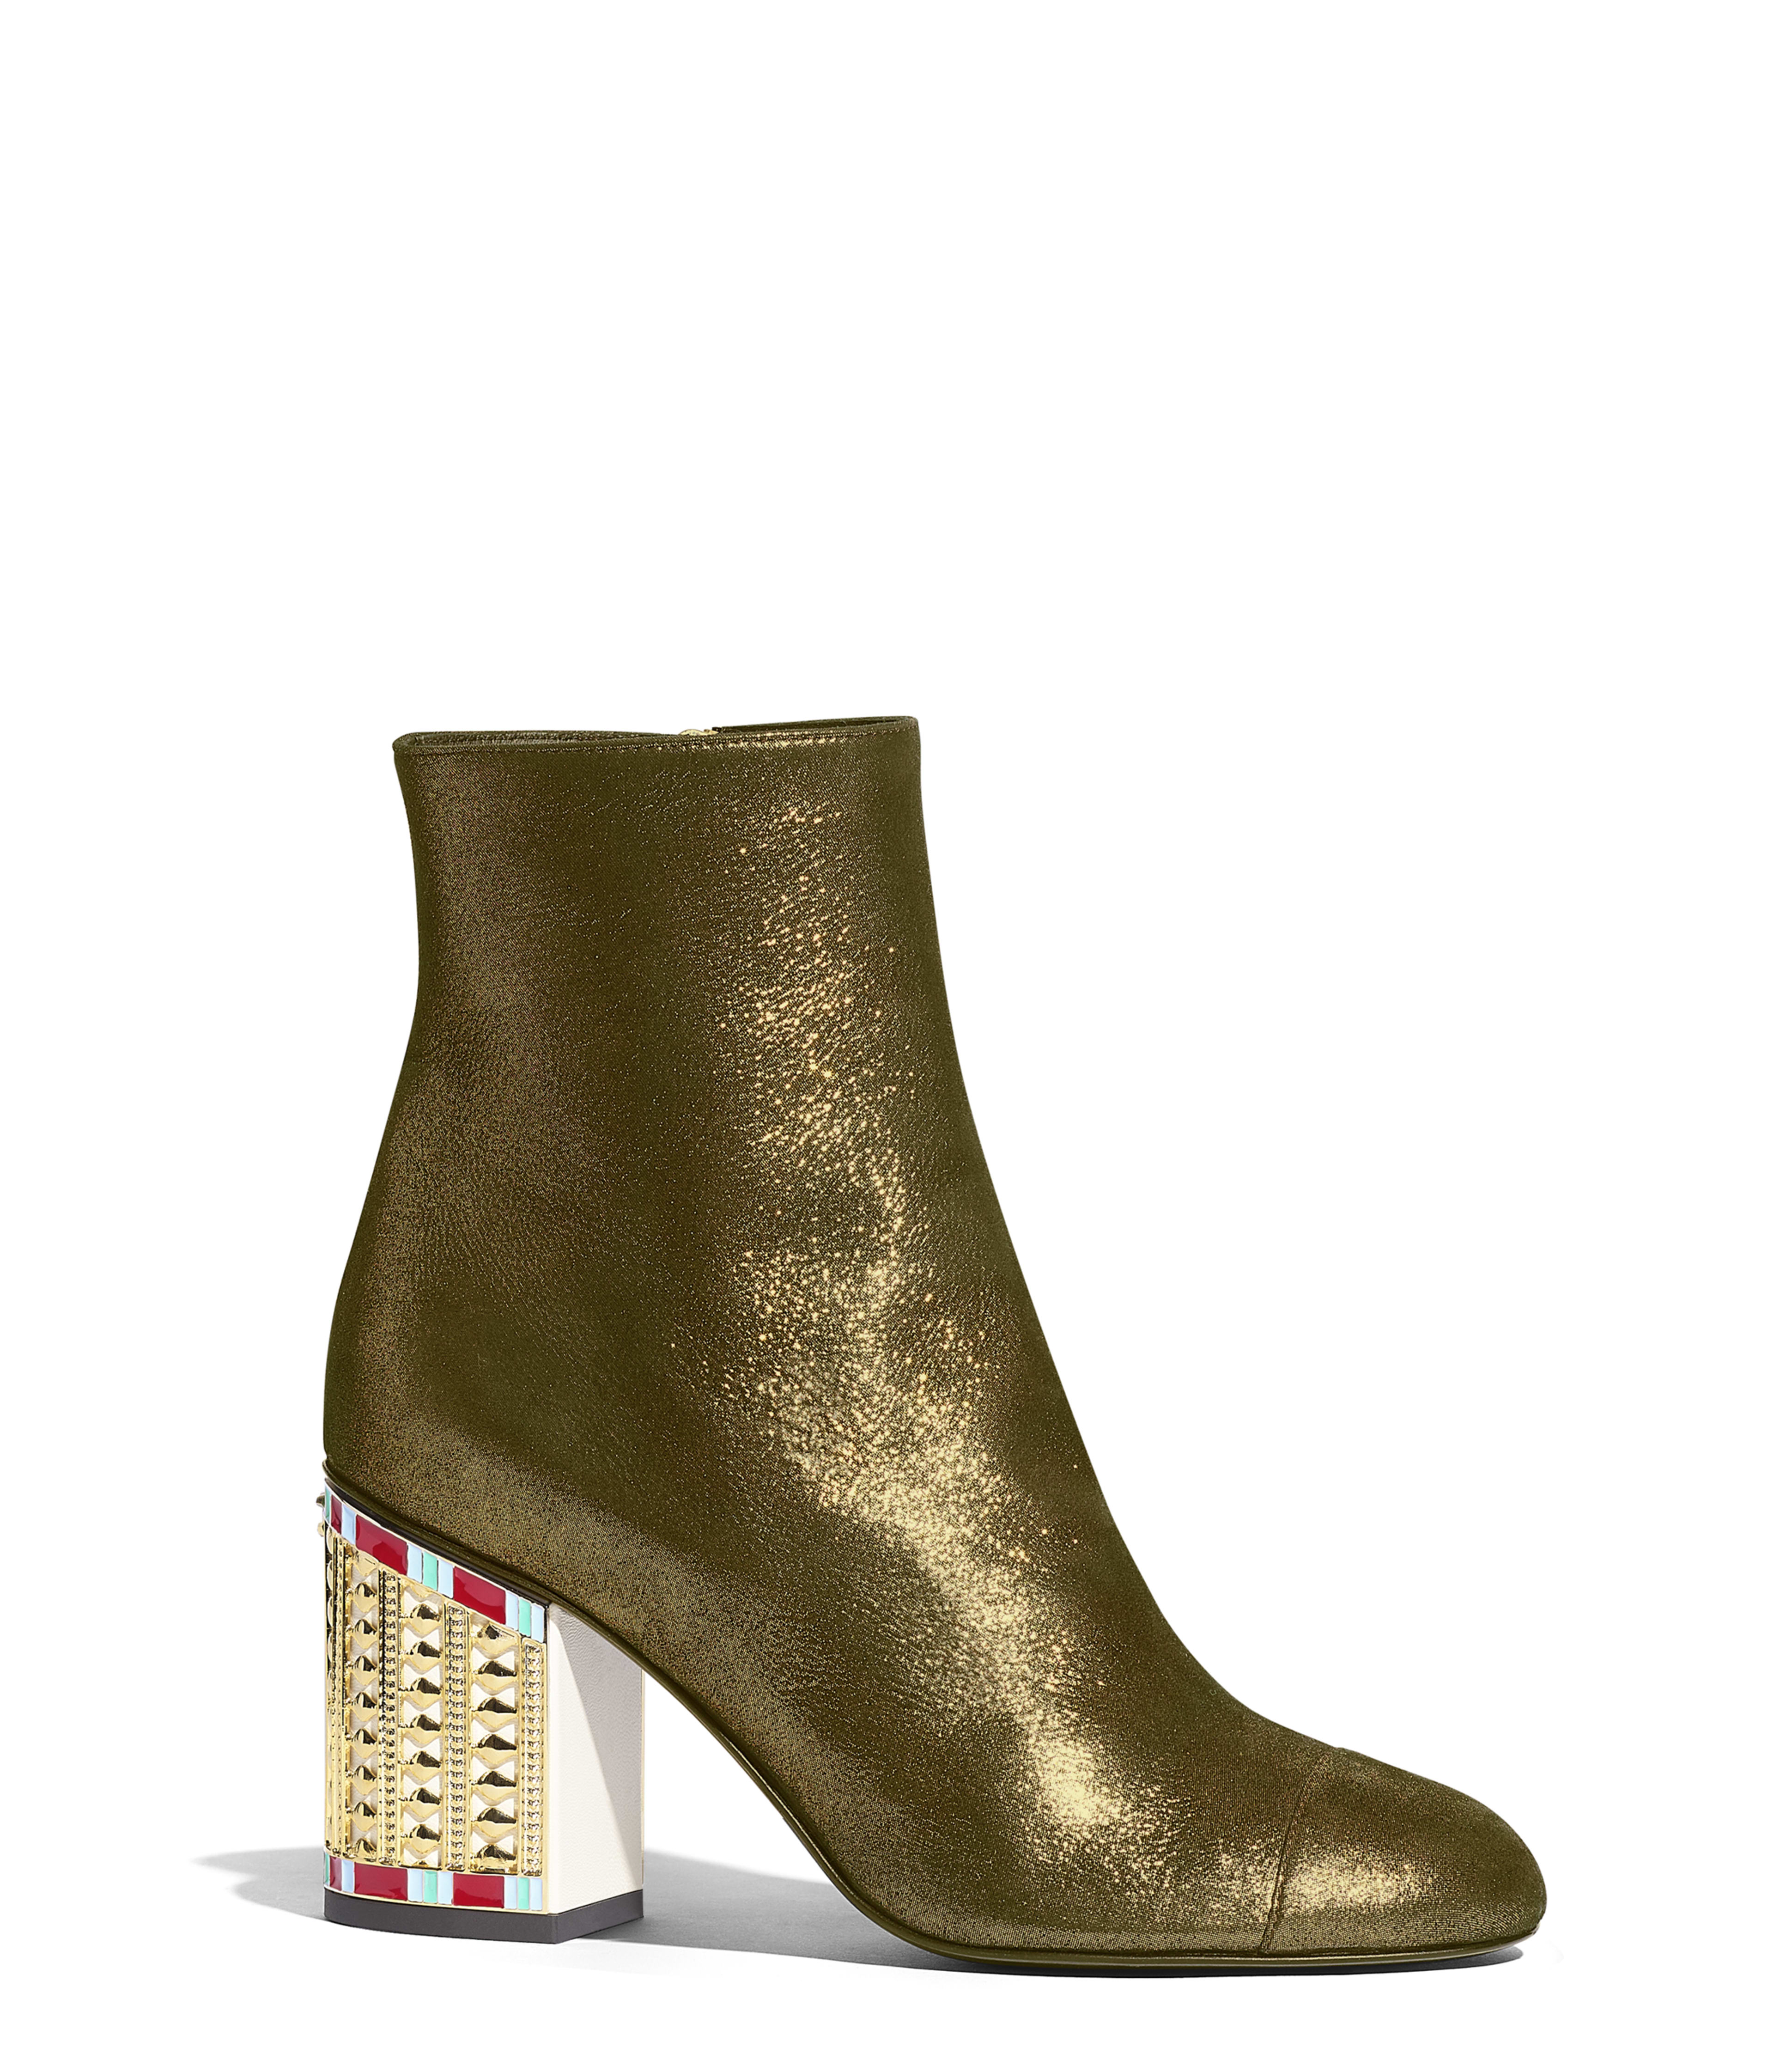 8e51eb148 Ankle Boots Laminated Lambskin, Gold & Black Ref. G34917X53073C0369